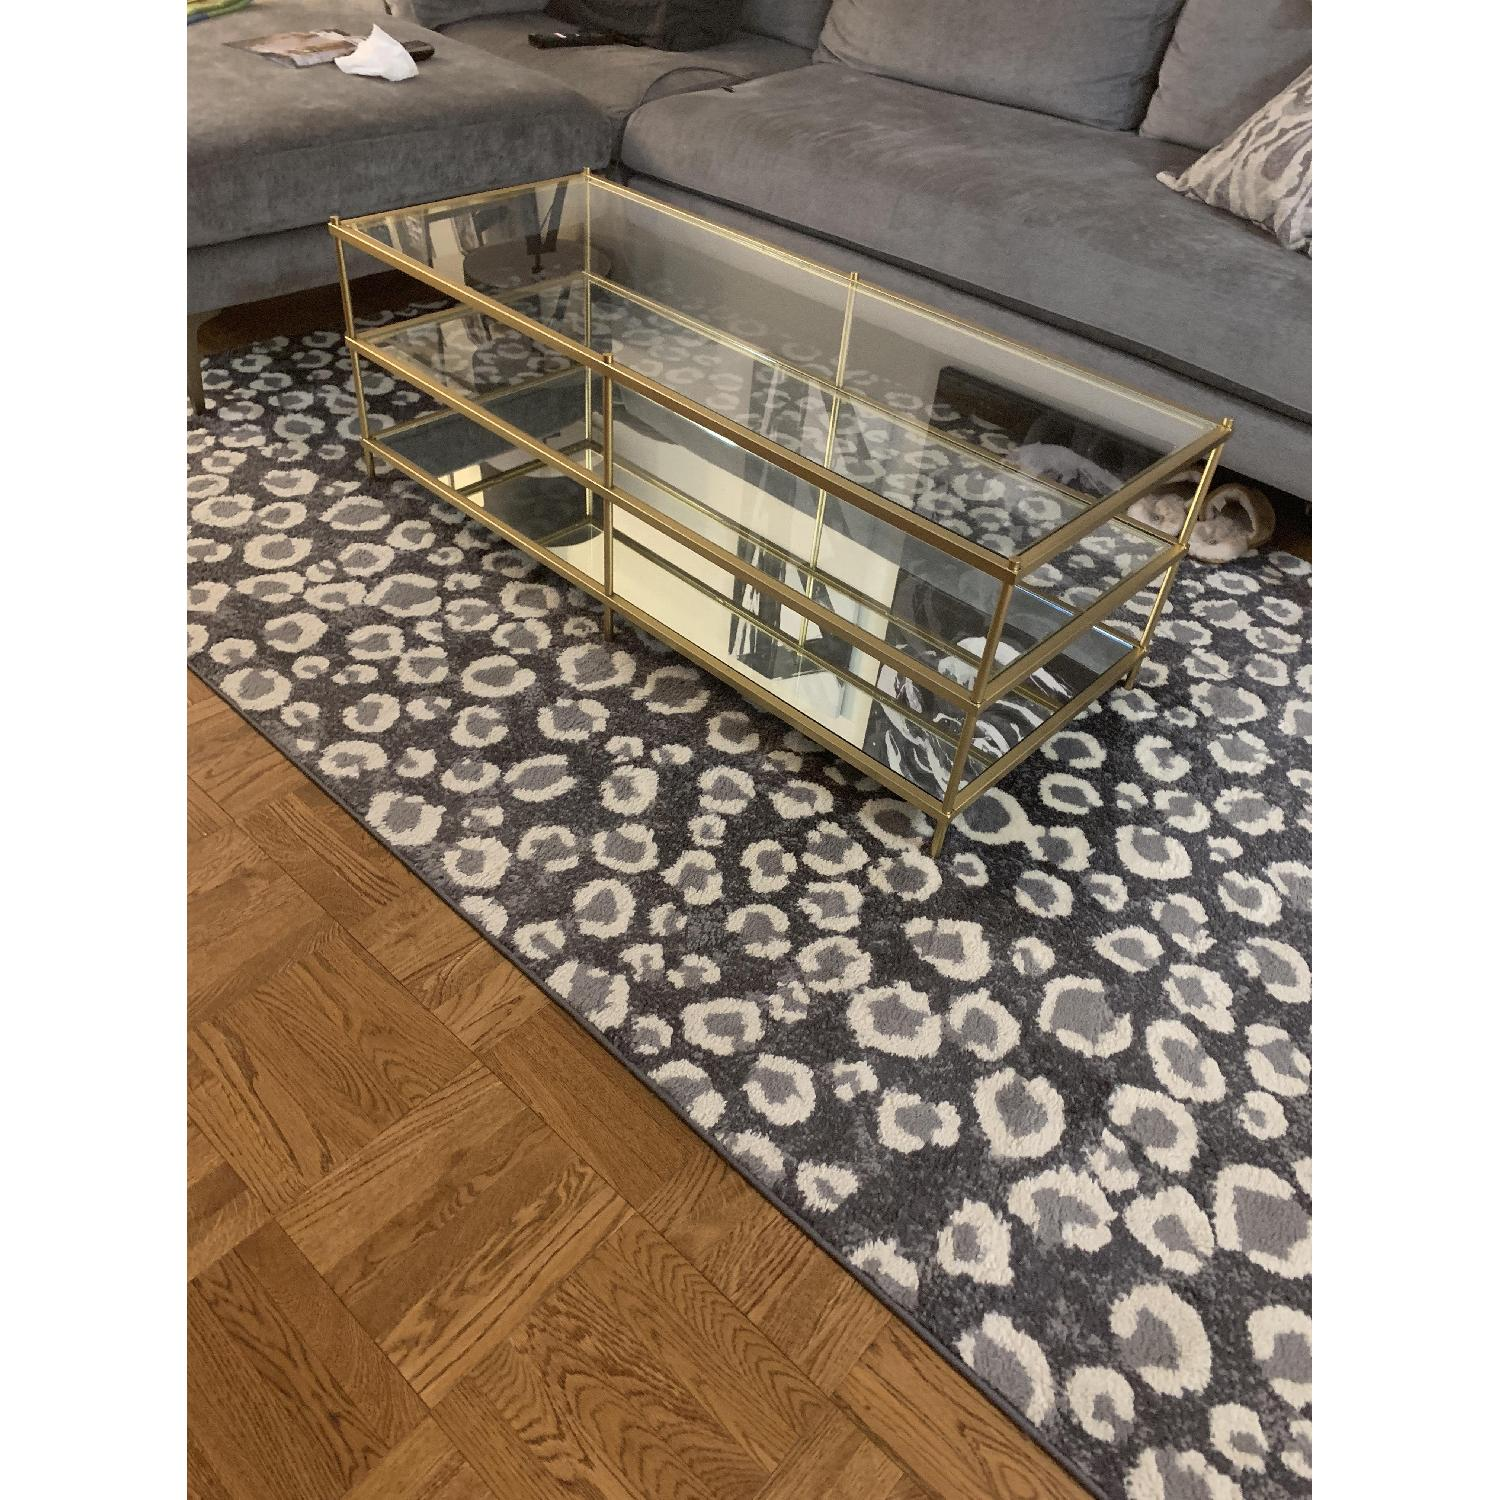 West Elm 3 Tier Glass/Gold Coffee Table-1